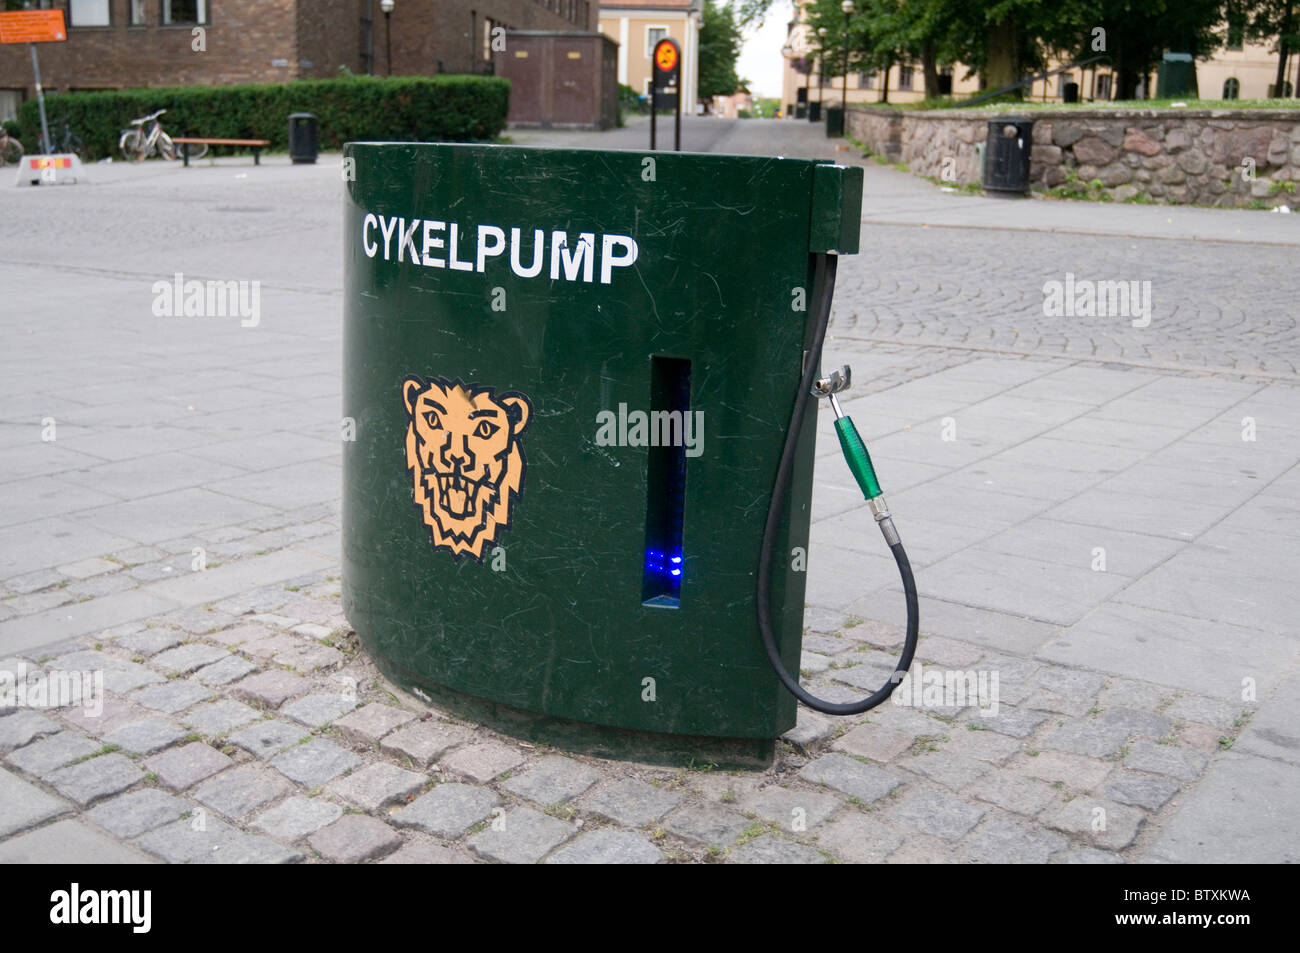 communal cycle pump bike tire tire inflation cykelpump pumps pumping up free air dispenser sweden swedish cycling - Stock Image